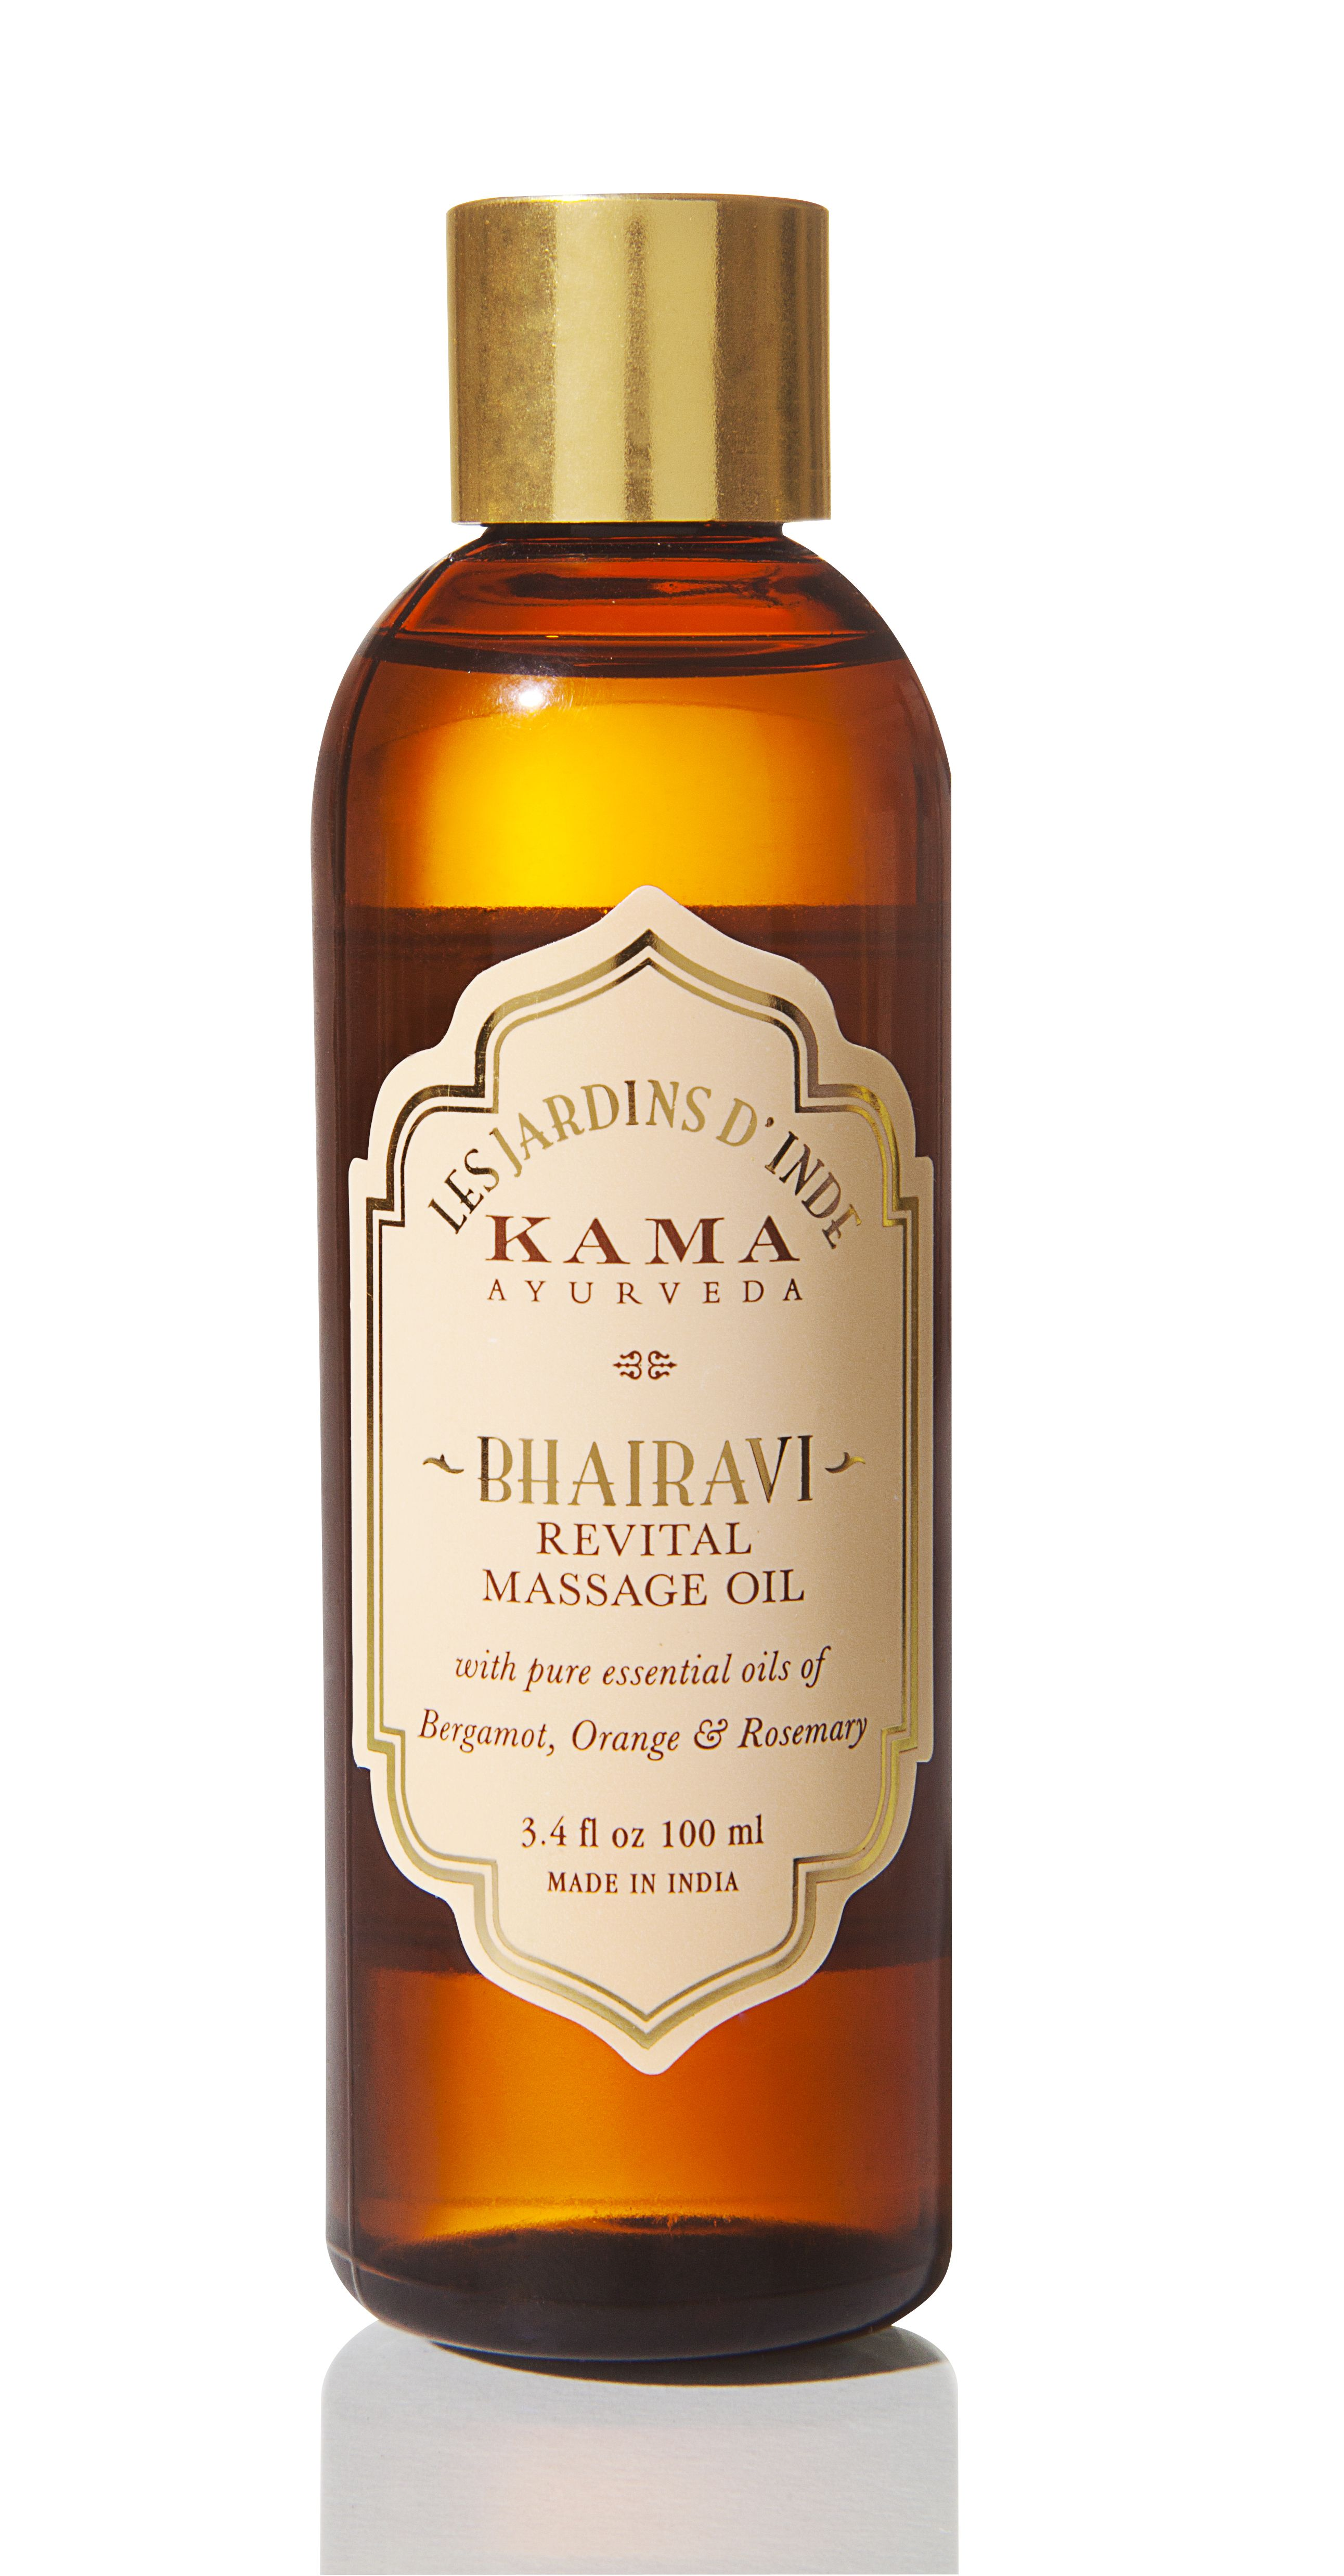 A softening and relaxing body massage oil that melts away